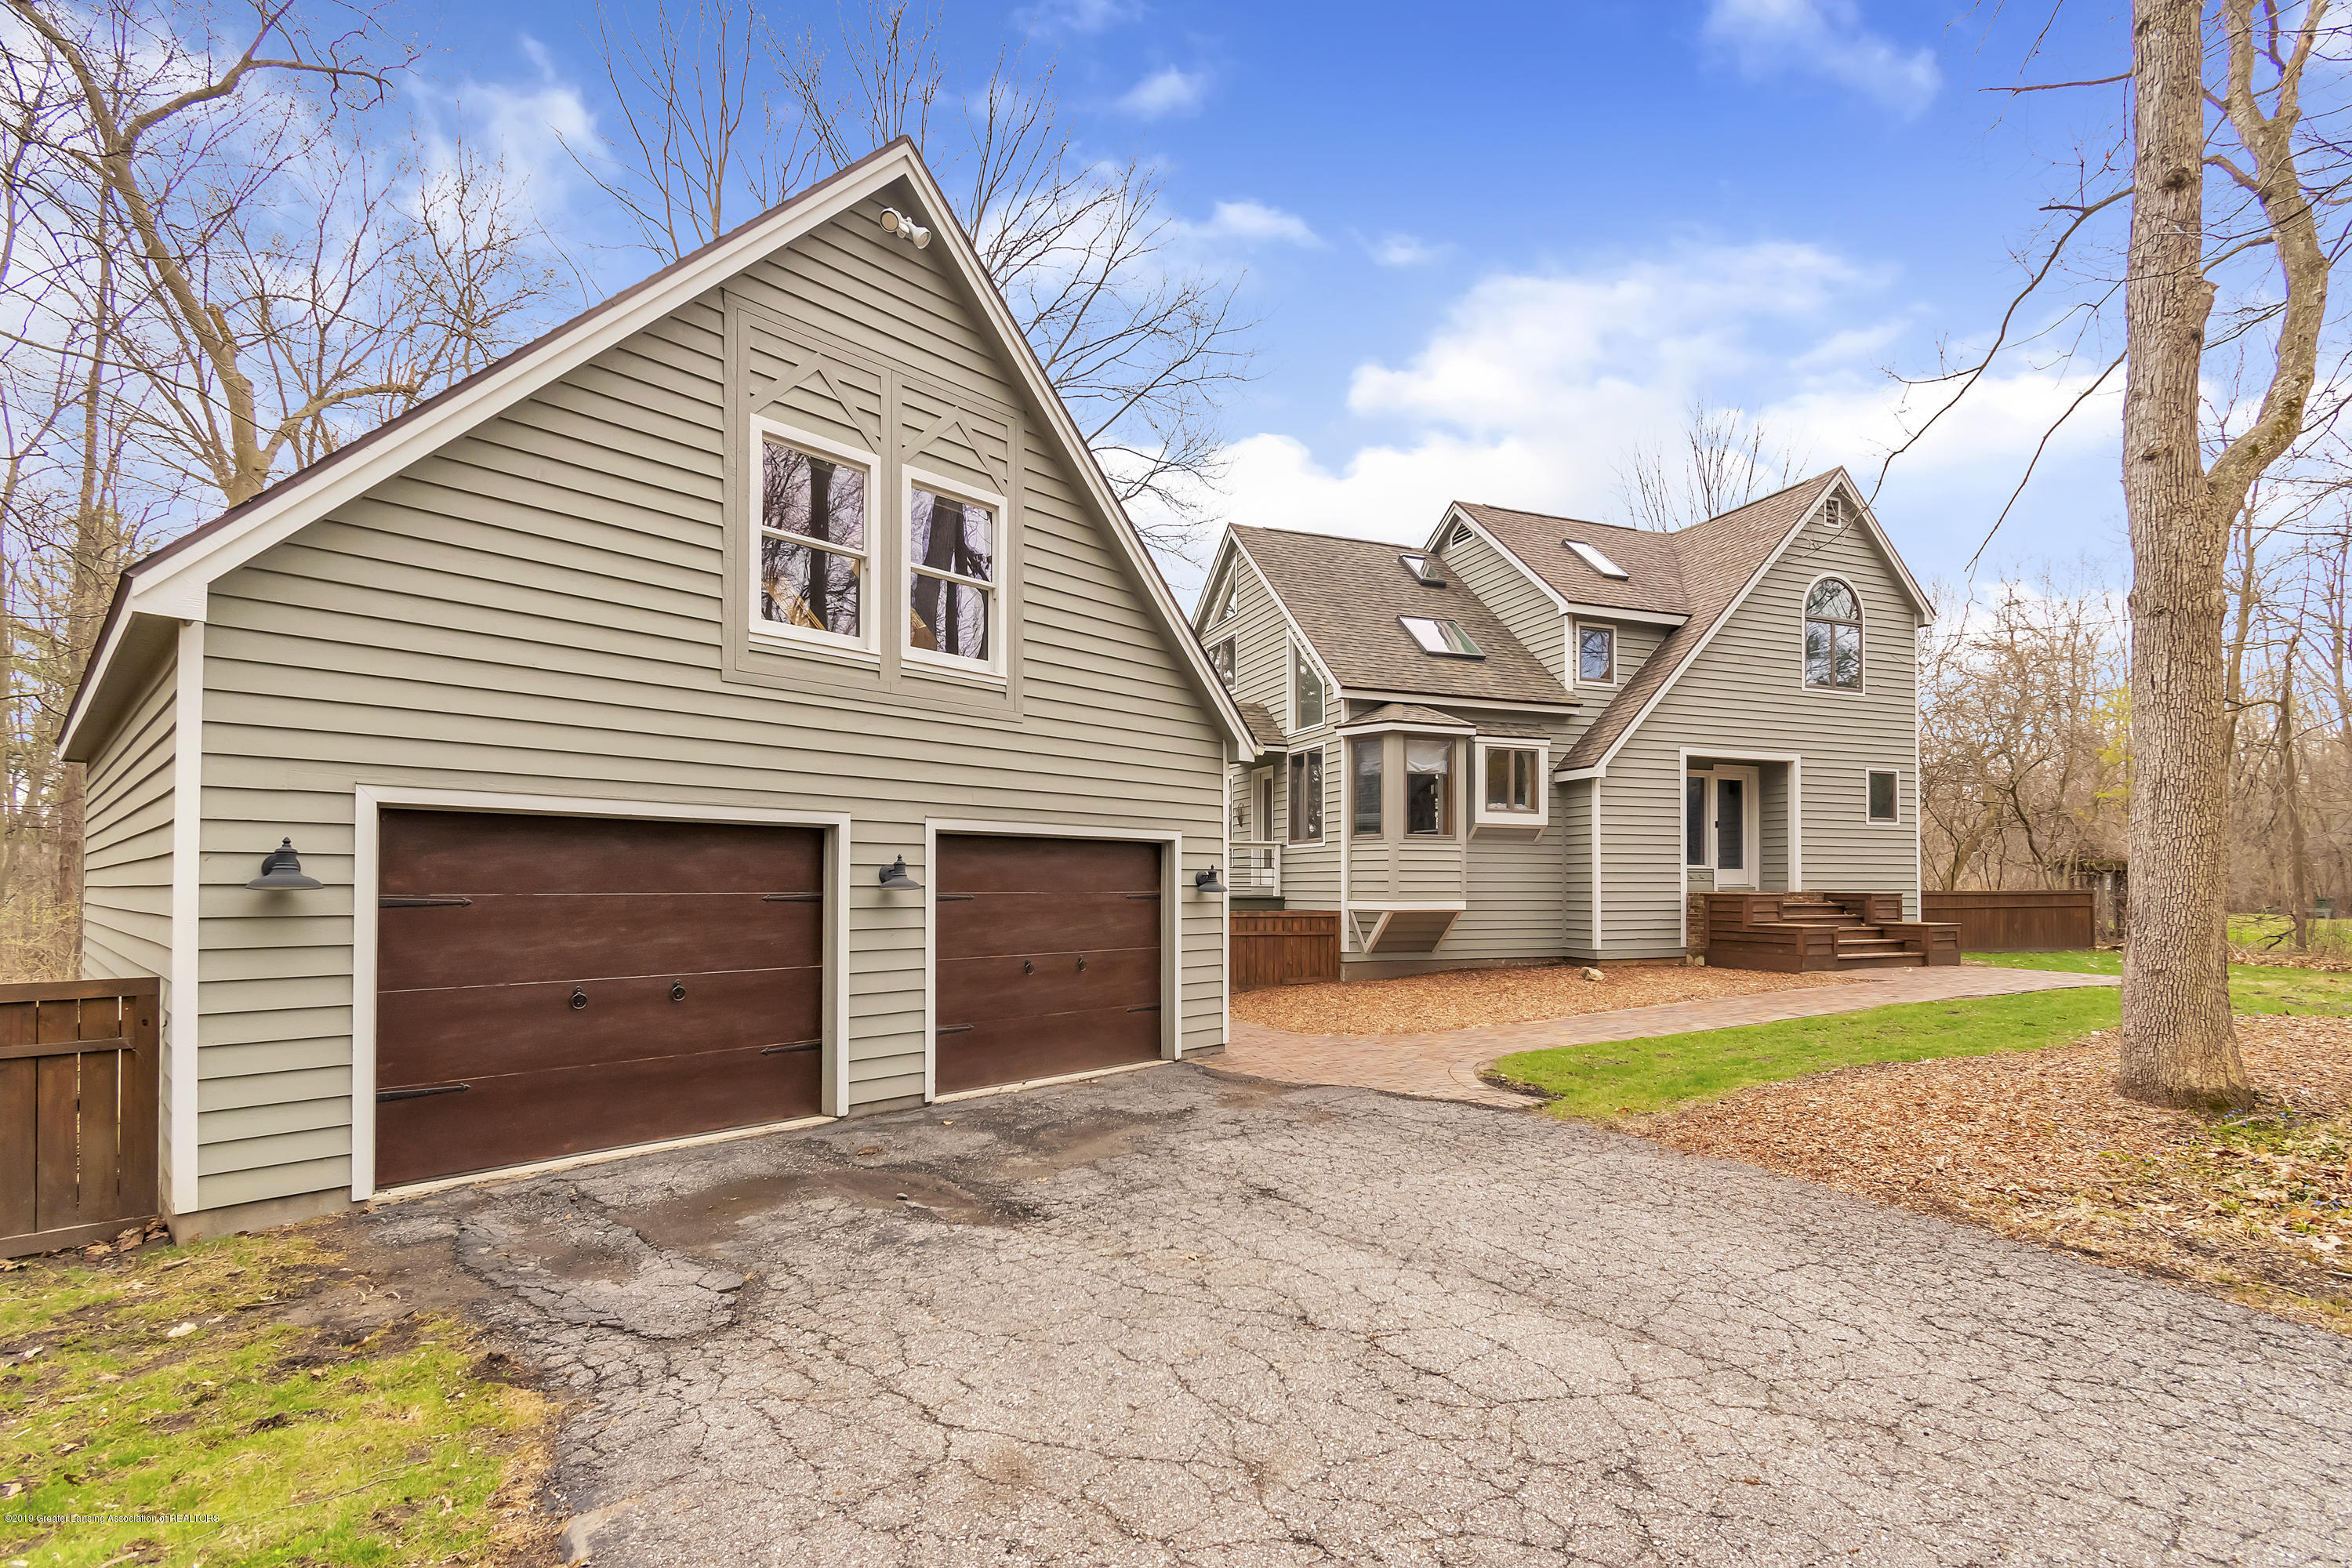 2423 Haslett Rd - Garage and House - 5